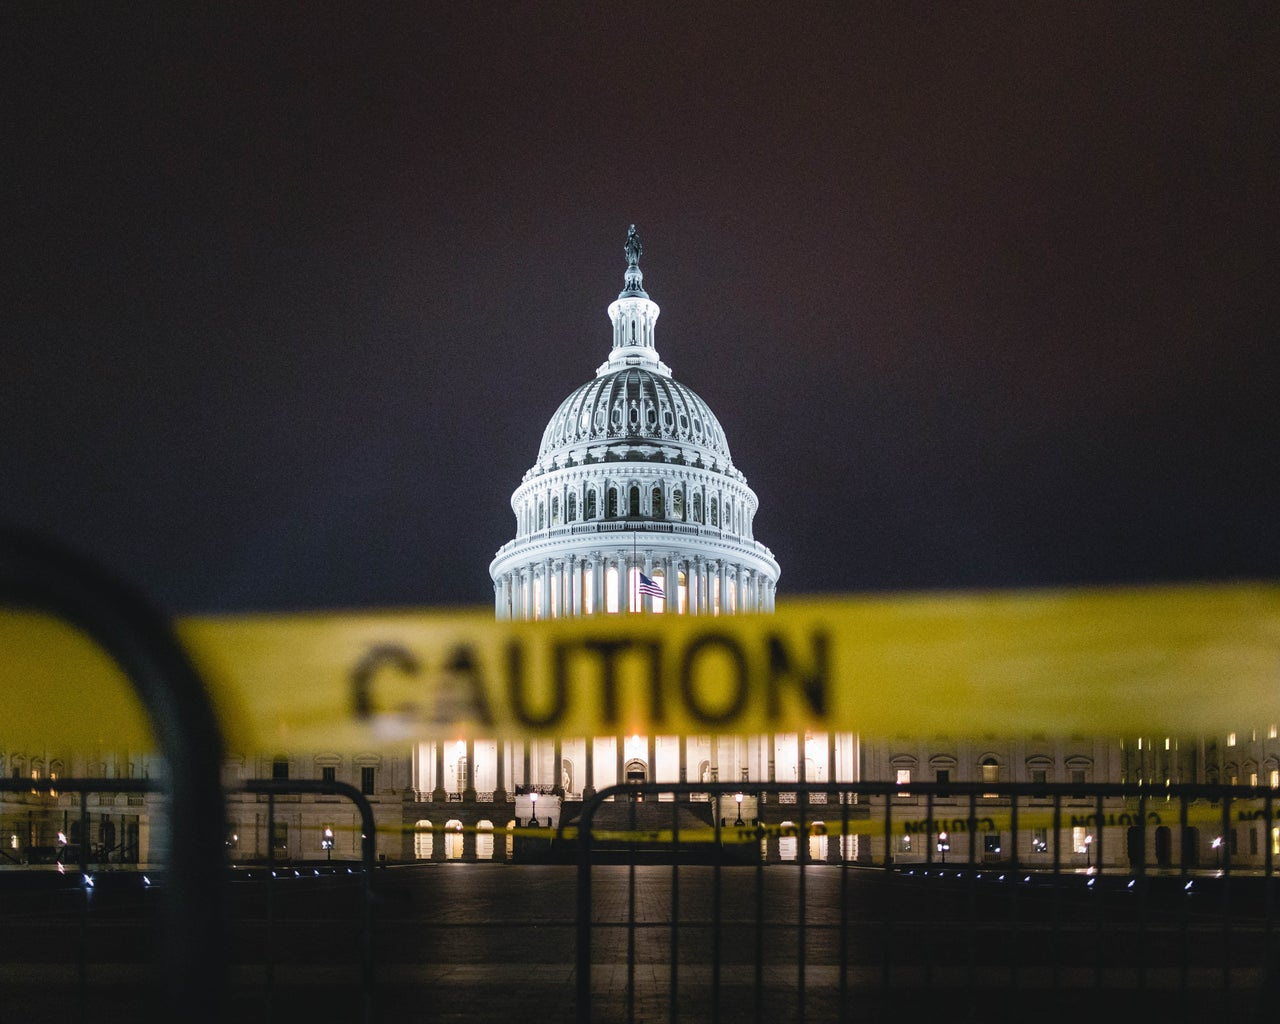 Caution Tape at the United States Capitol